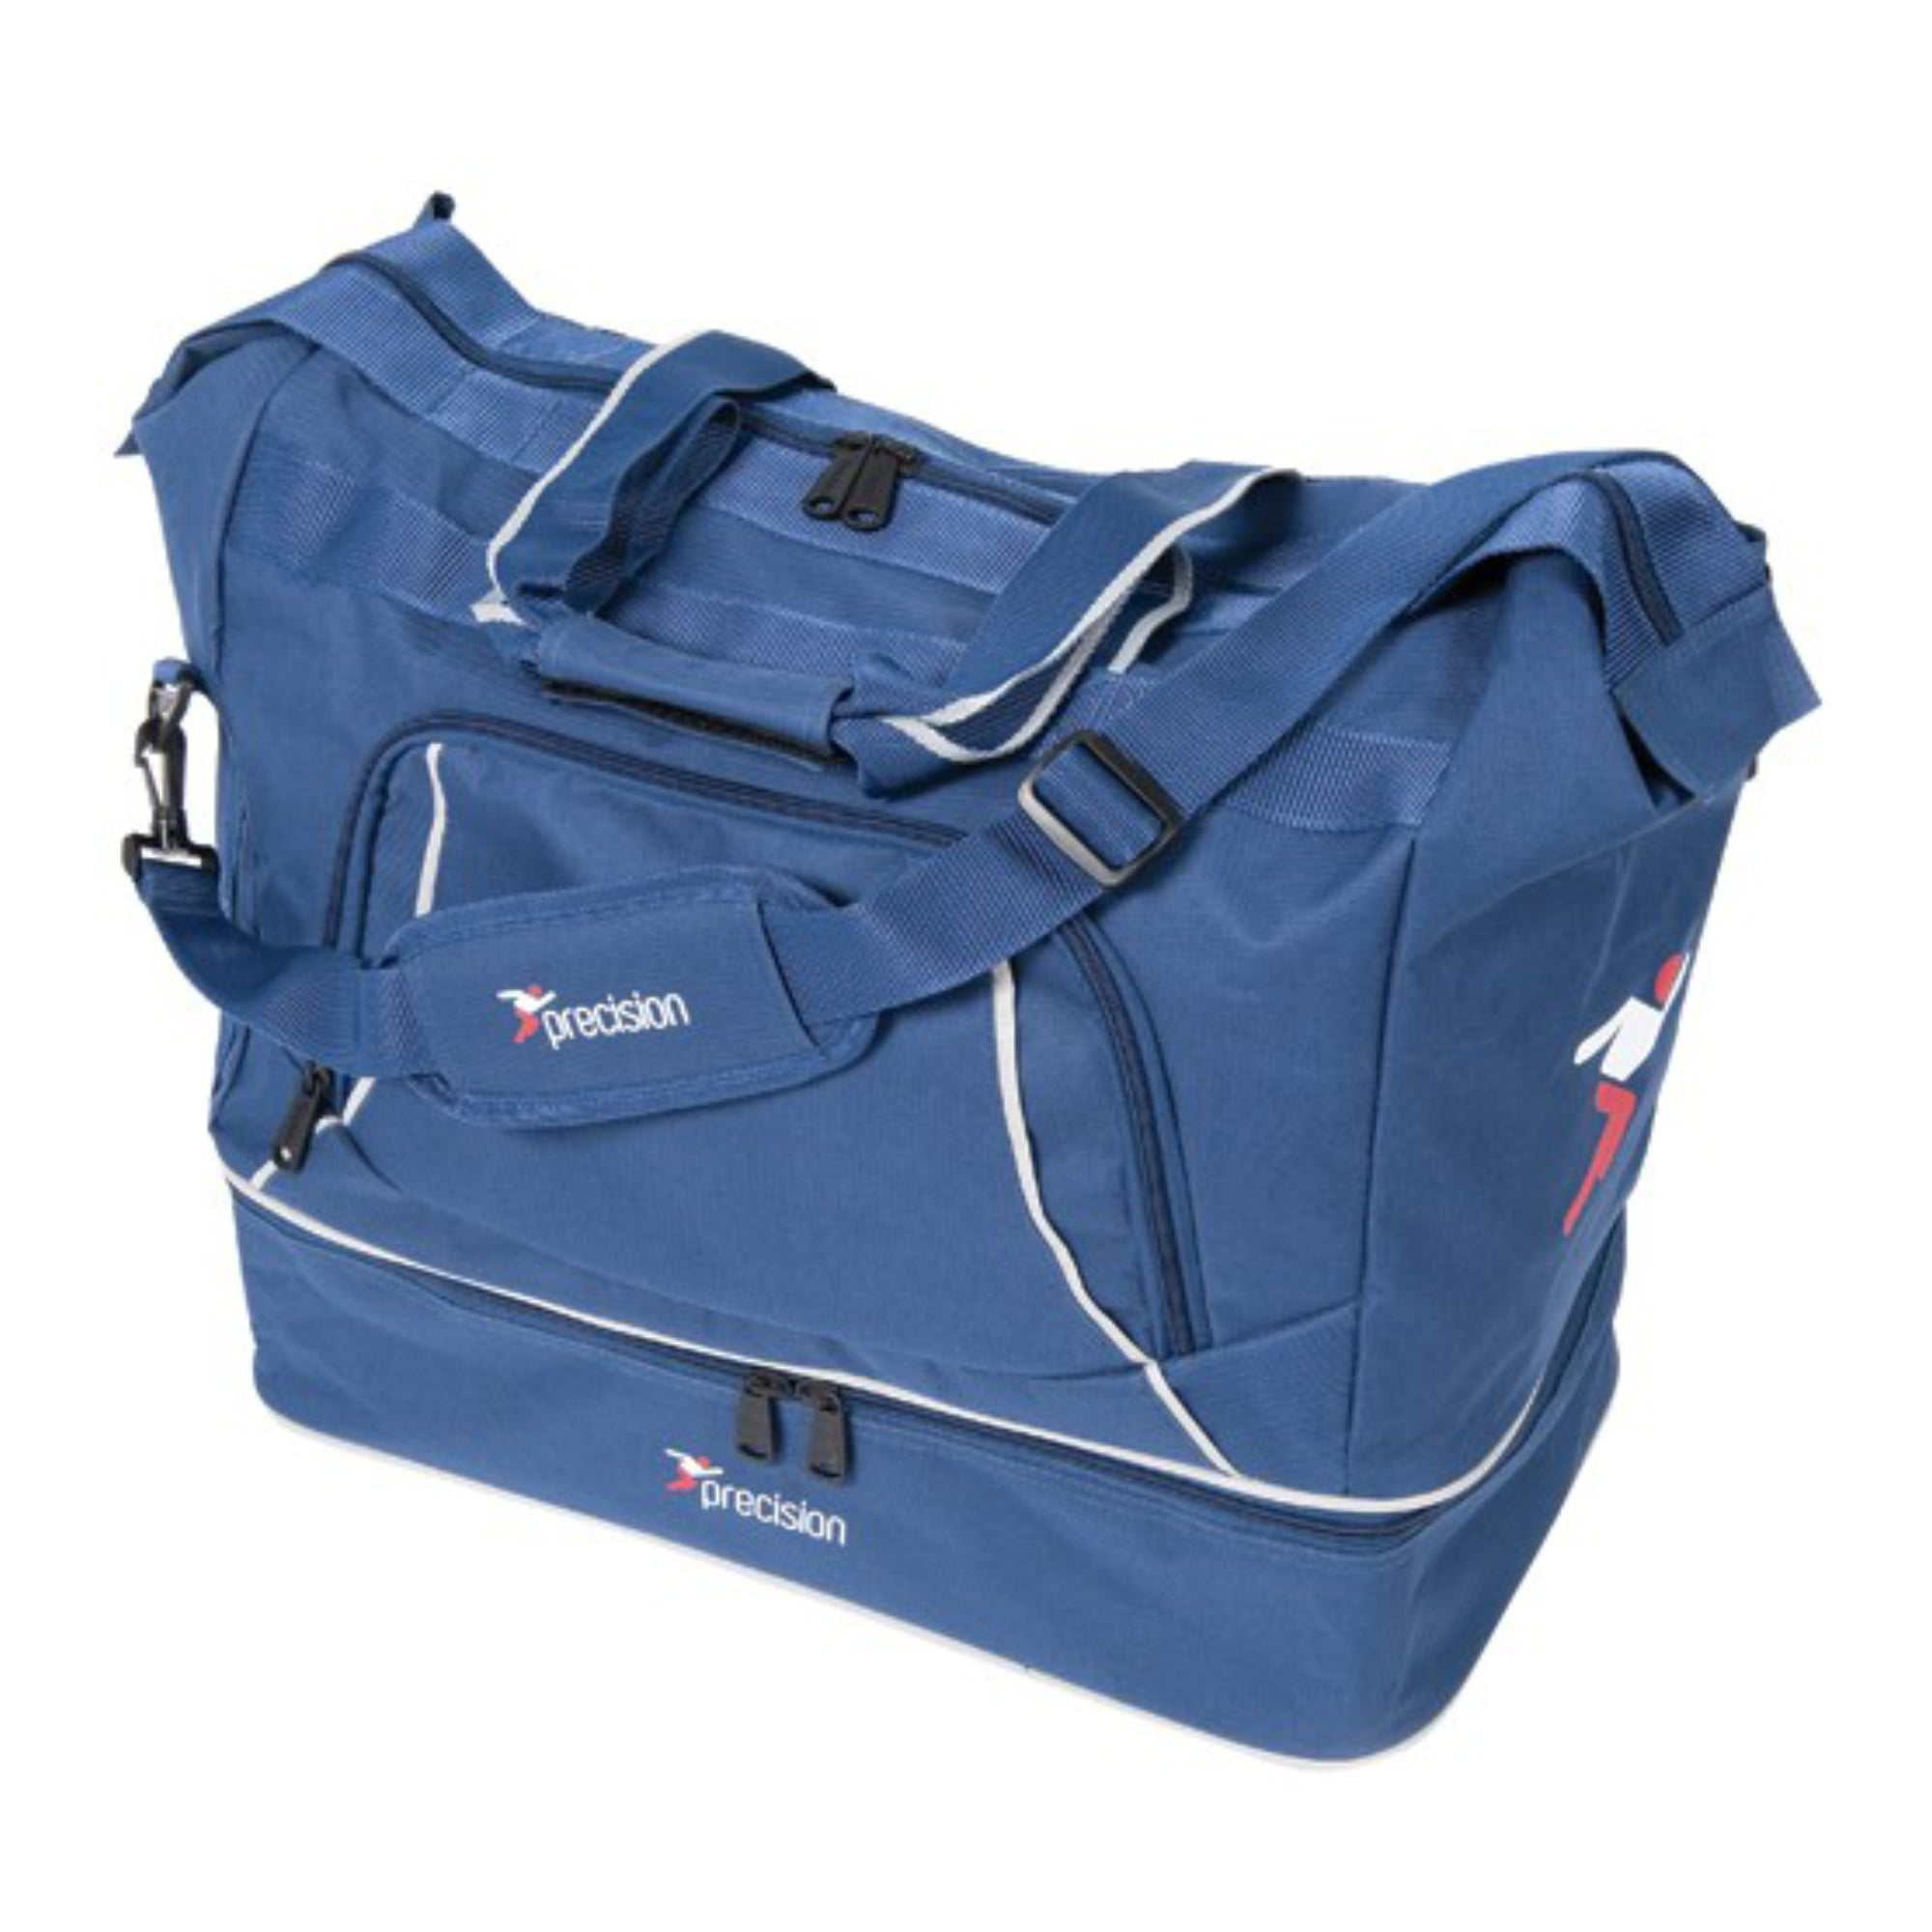 Precision Junior Players Bag - Navy